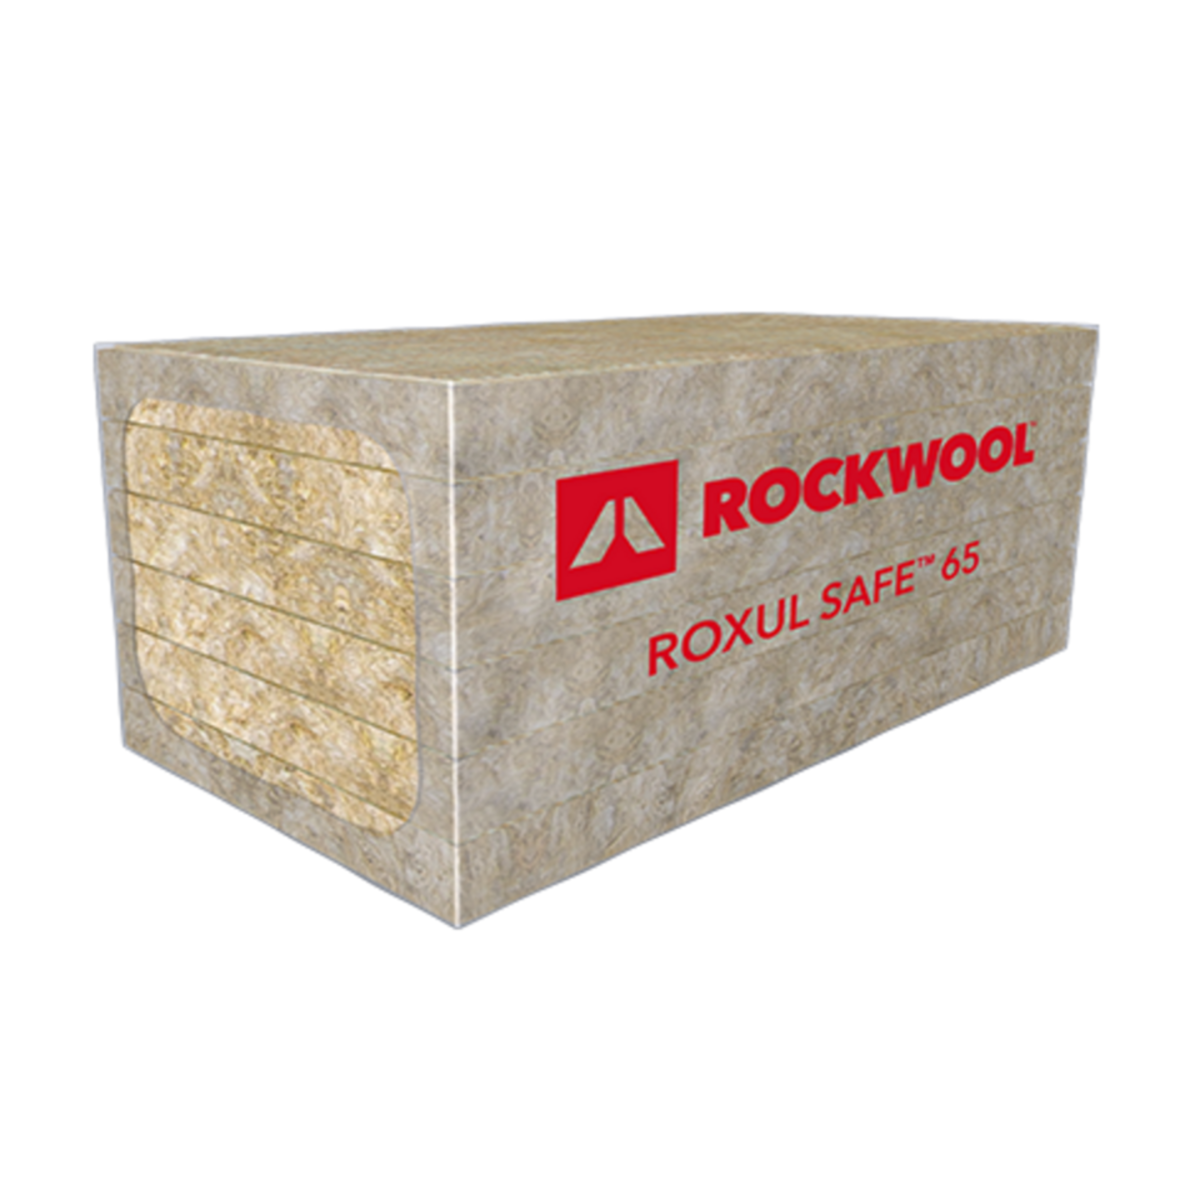 ROXUL SAFE™ 55 & 65 medium-density insulation products for interior